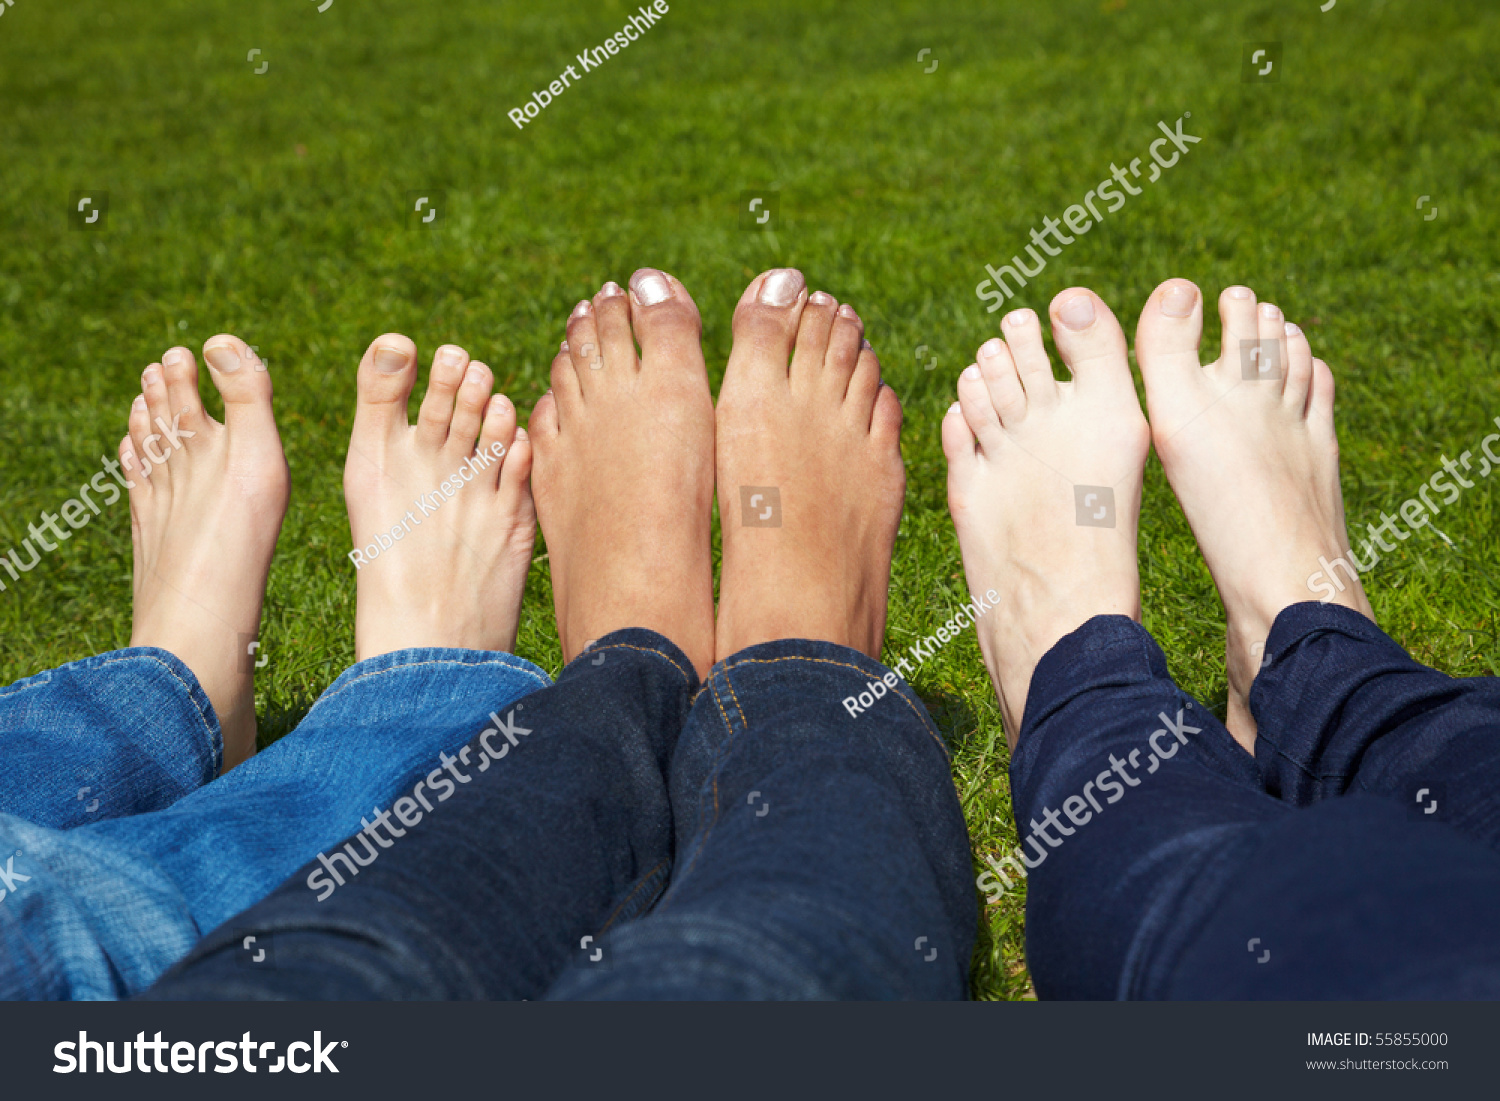 three women naked feet lying grass stock photo (royalty free